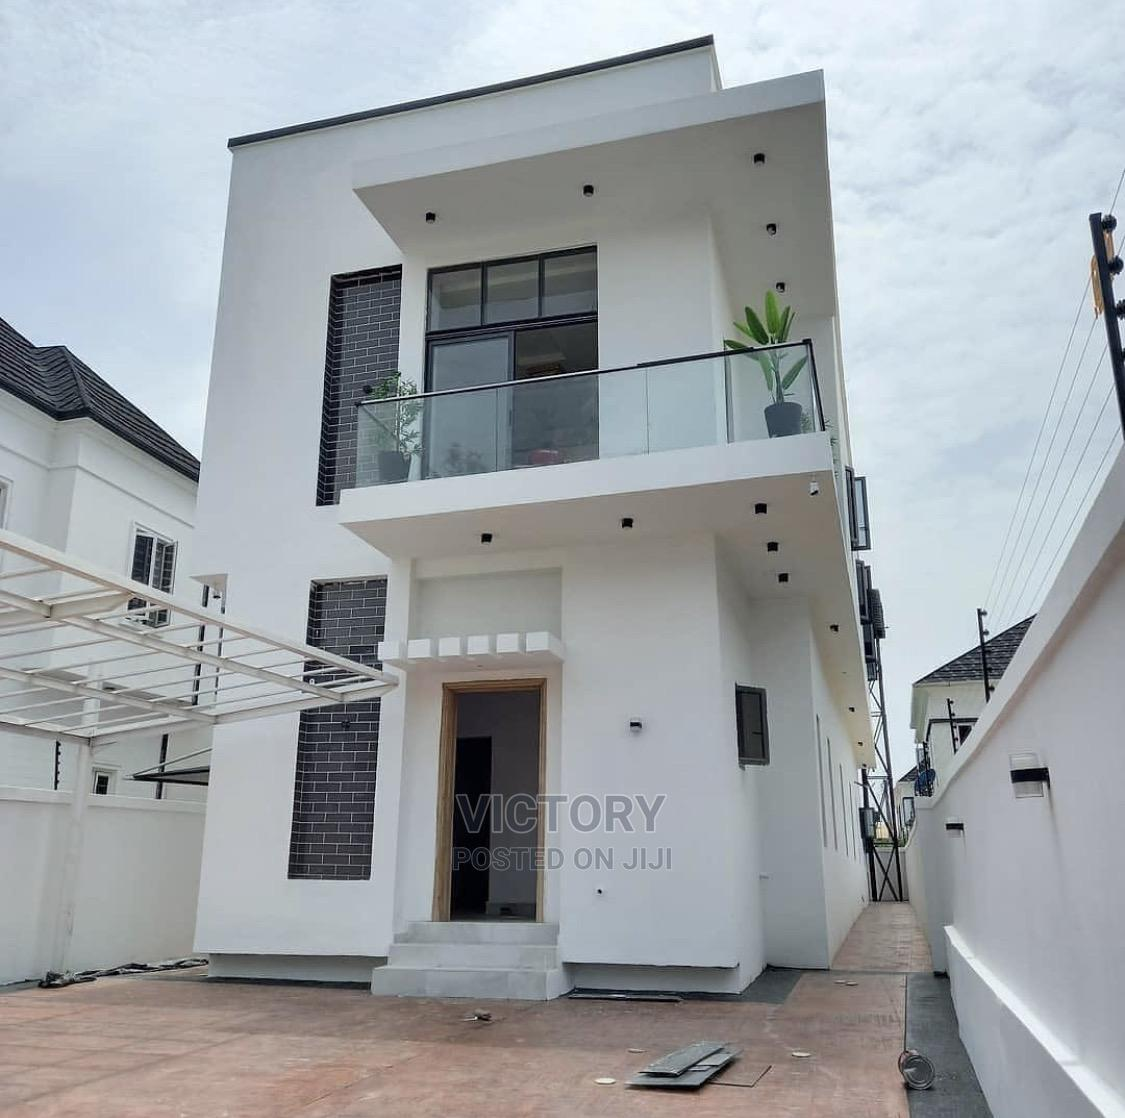 5 Bedroom Duplex With 1 BQ, Title Governor'S Consent